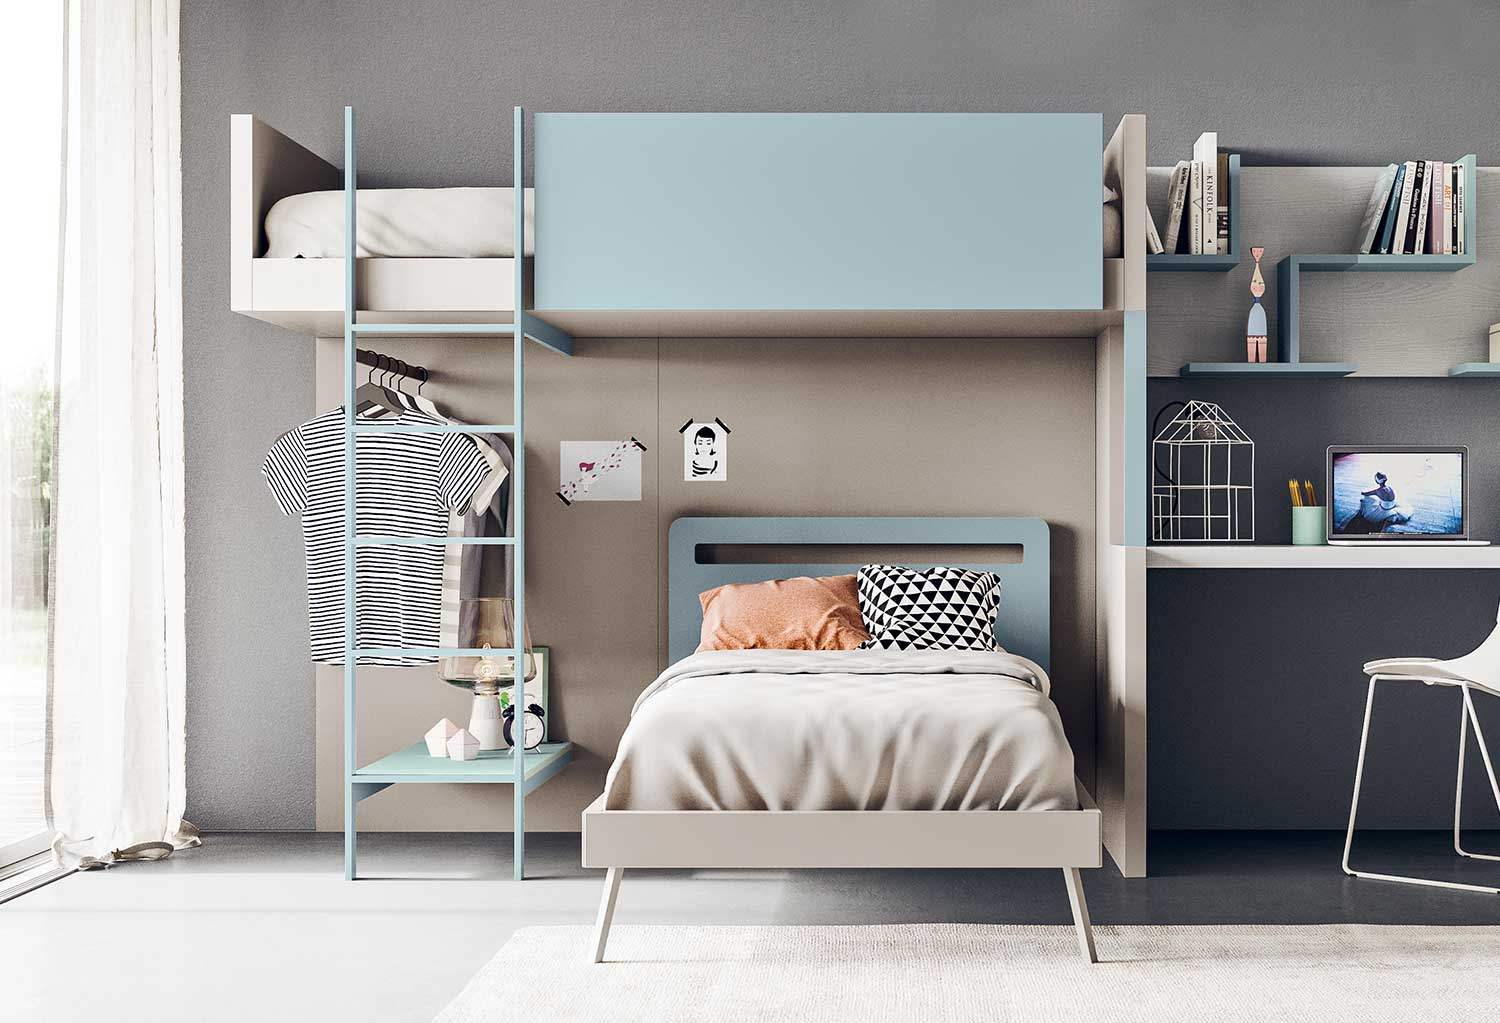 Corner shaped bunk bed that separates into a loft and a single bed